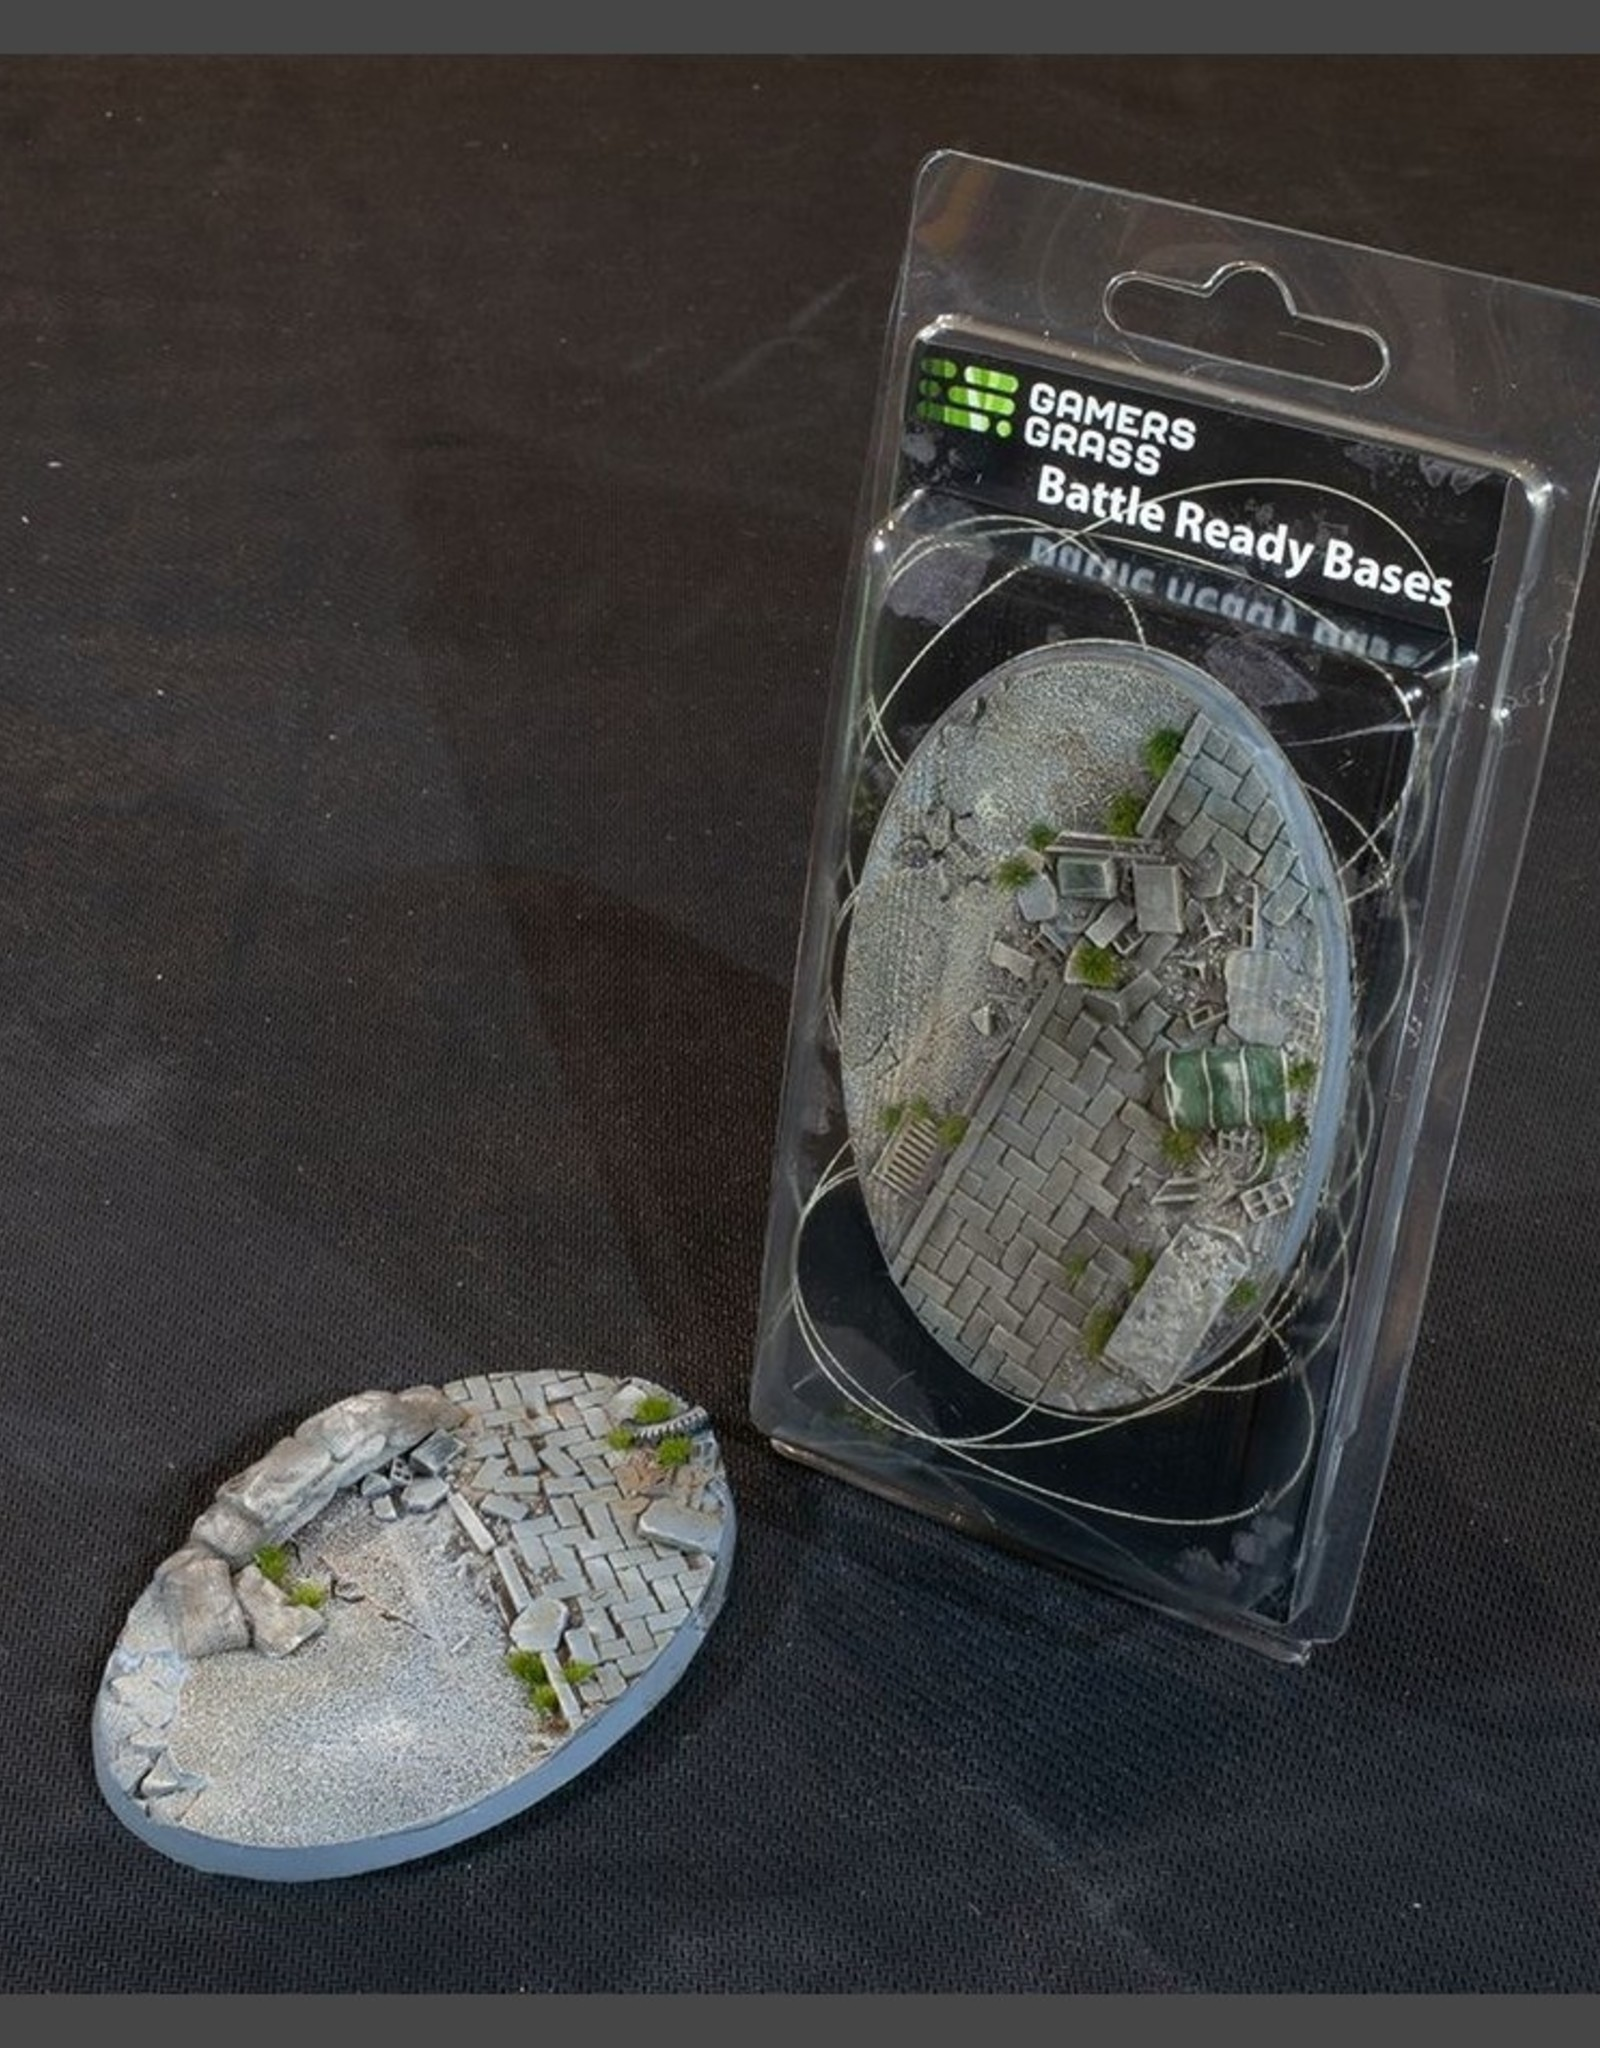 Gamers Grass Urban Warfare Bases Pre-Painted (1x 105mm Oval)